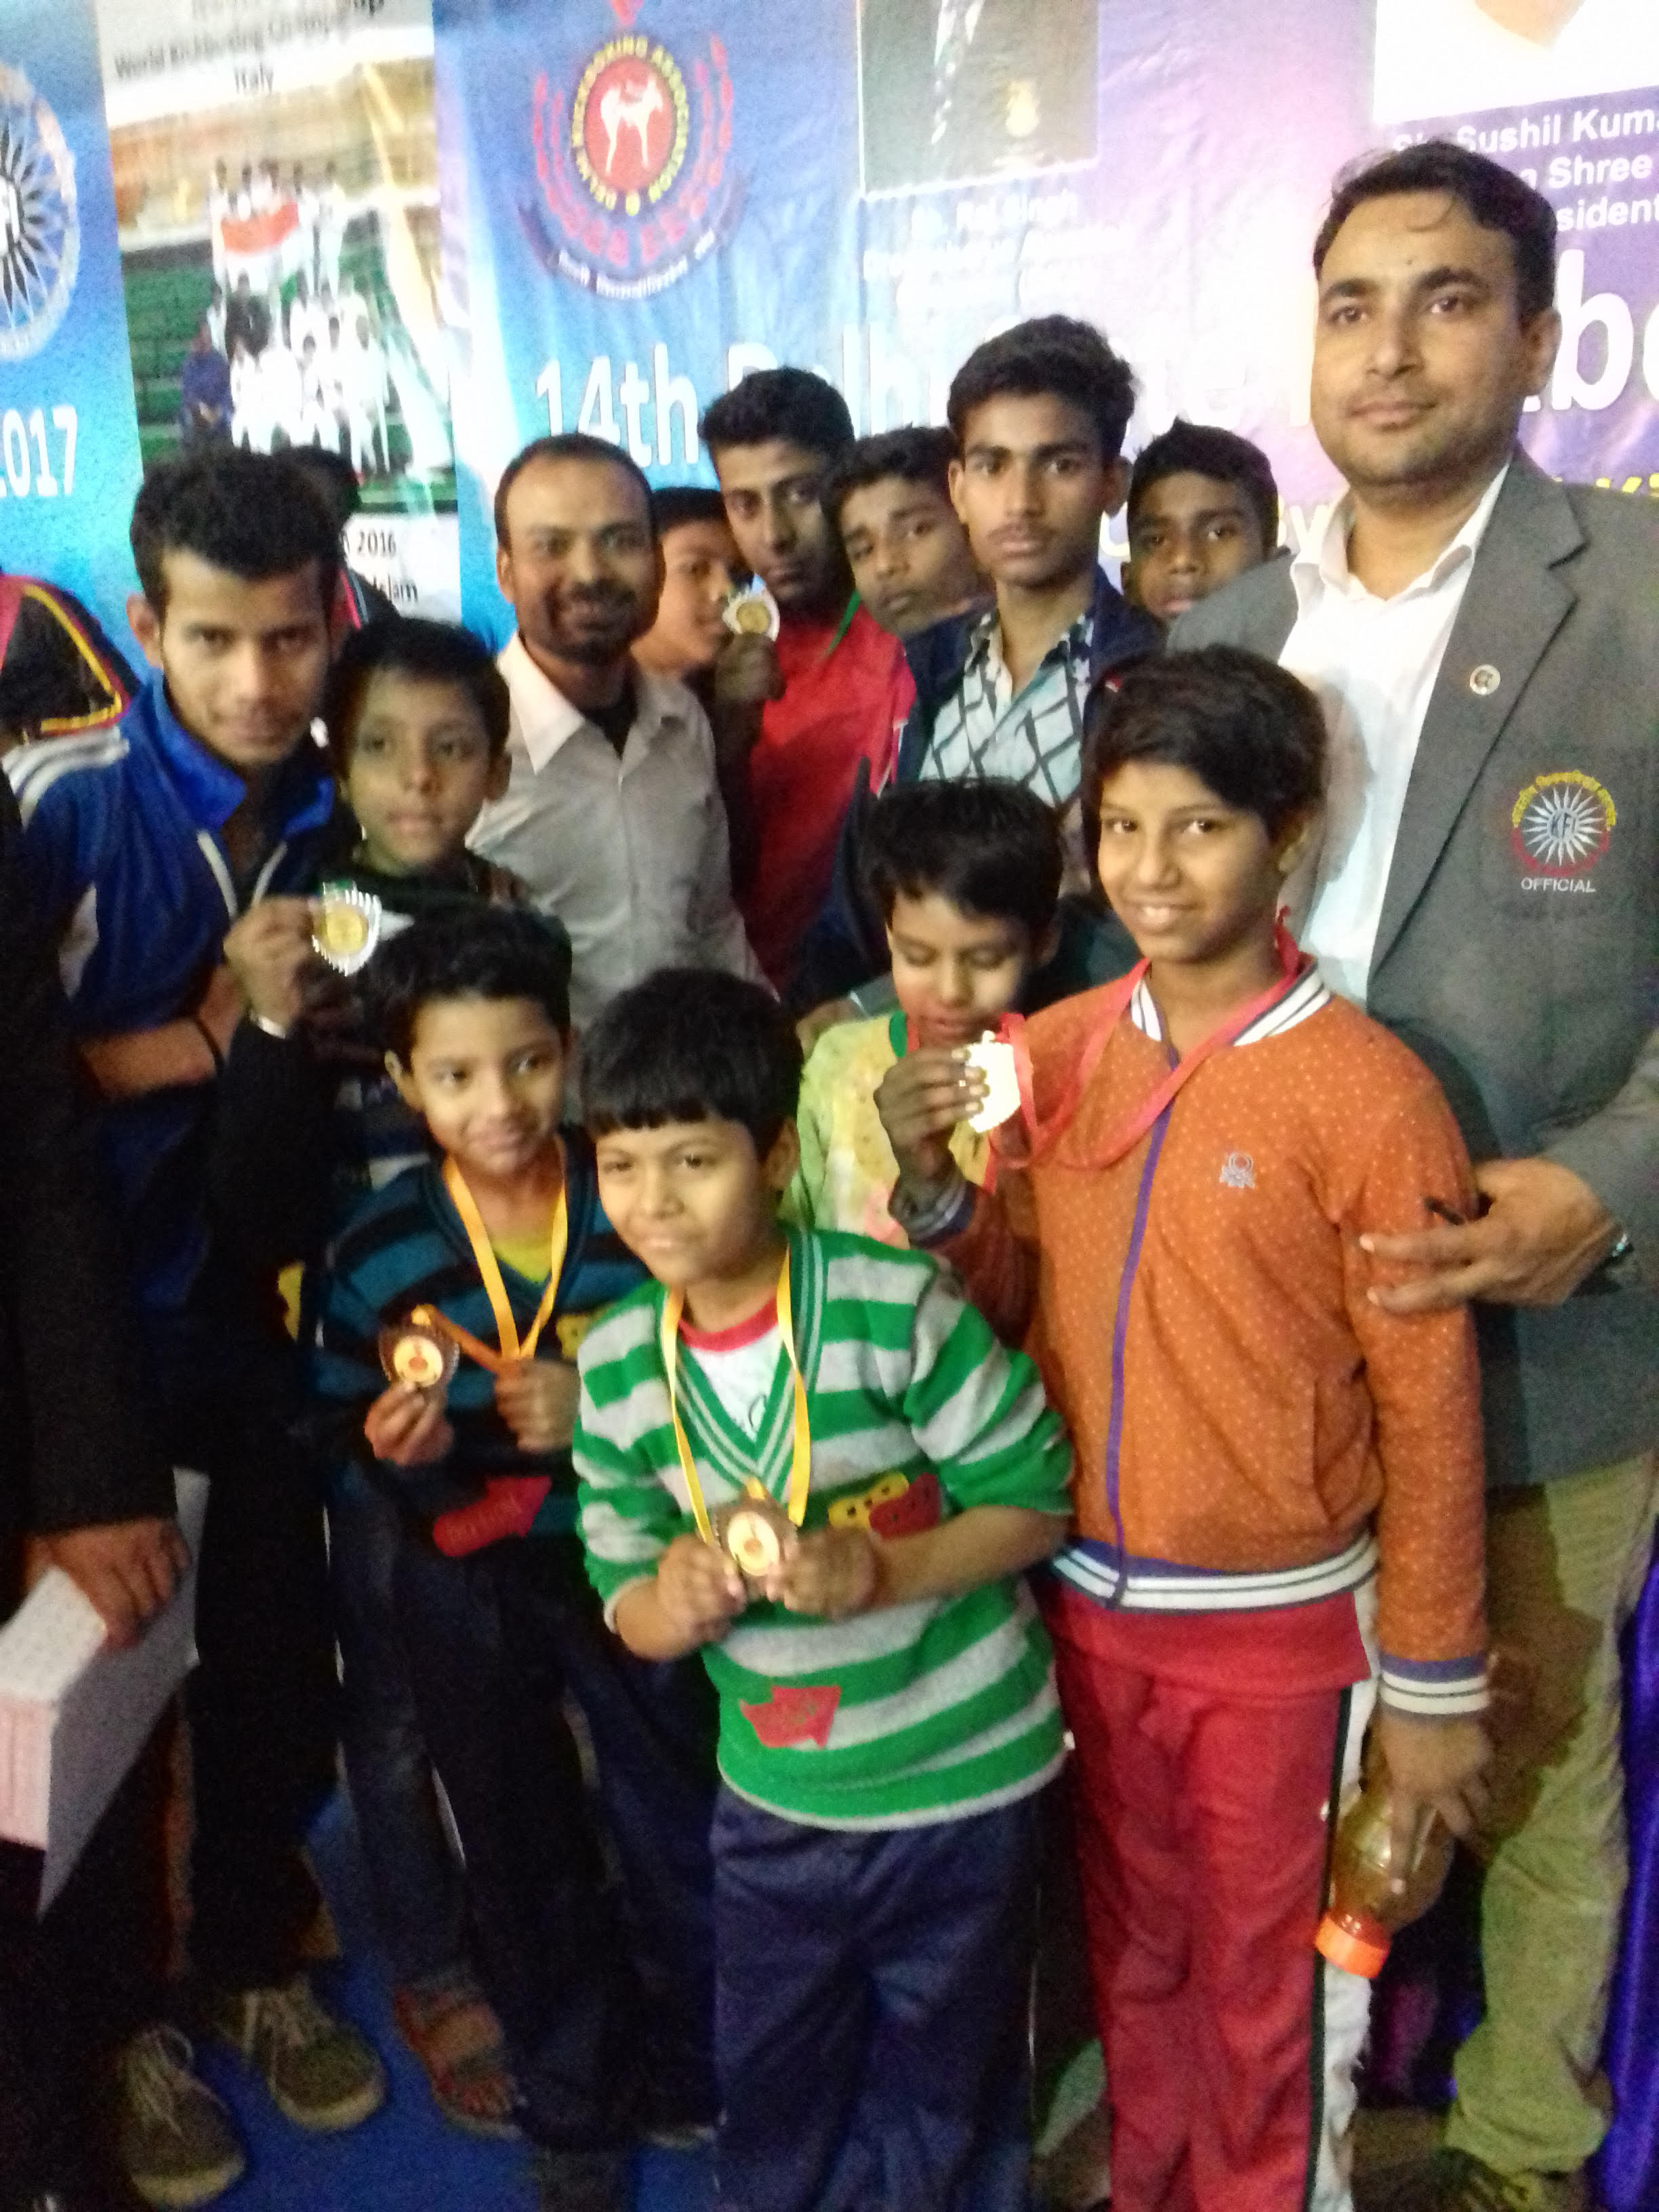 Anand won silver medal